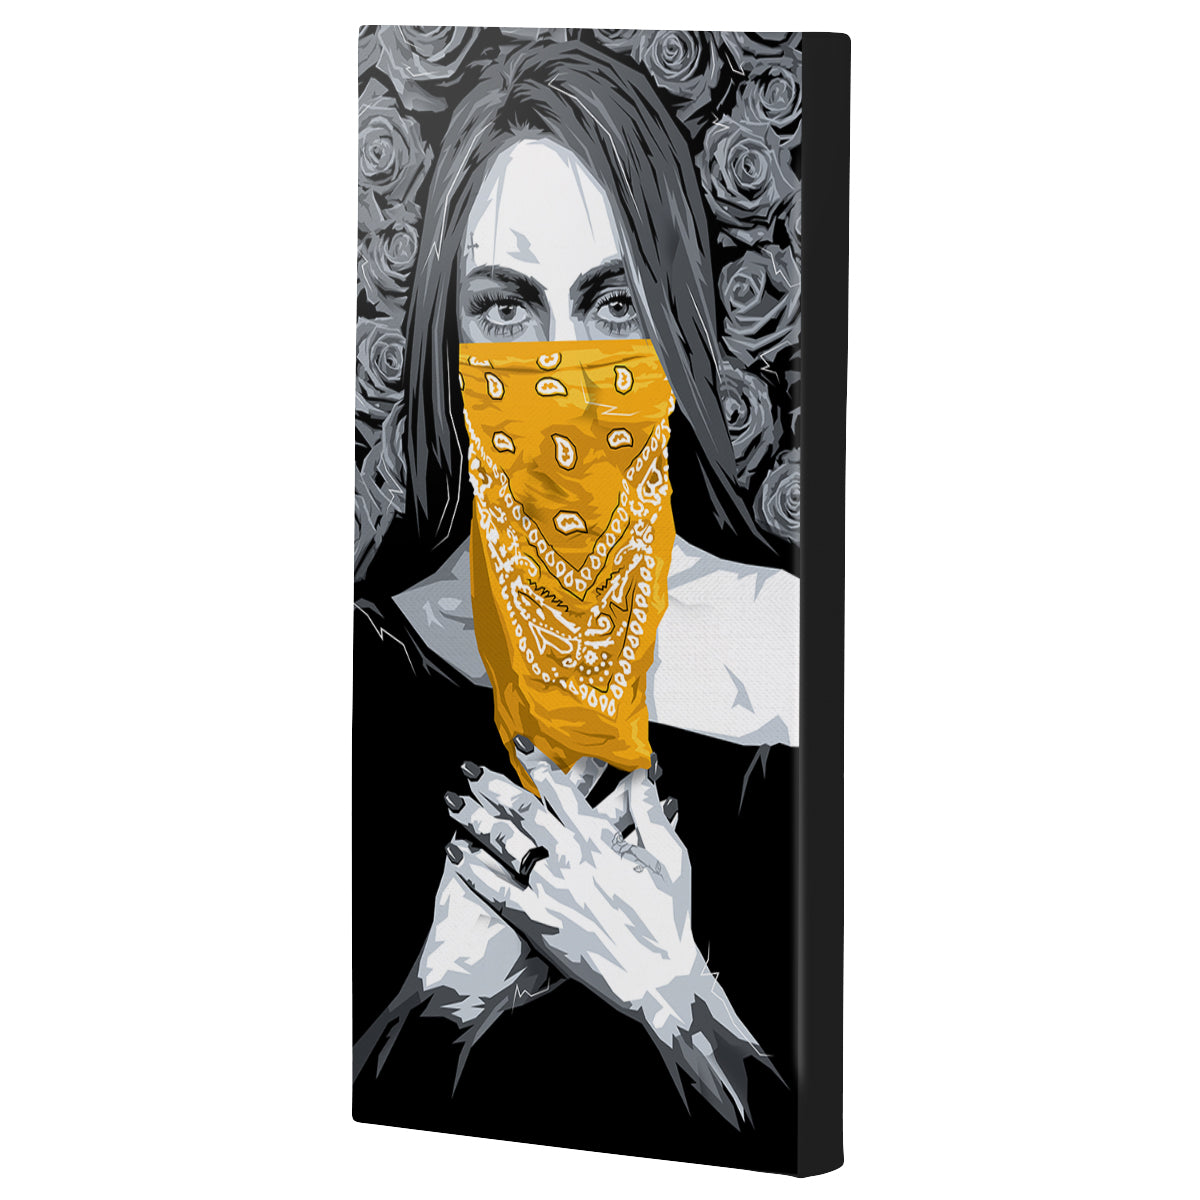 Lost Art Canada - yellow bandana bandita canvas print angle view